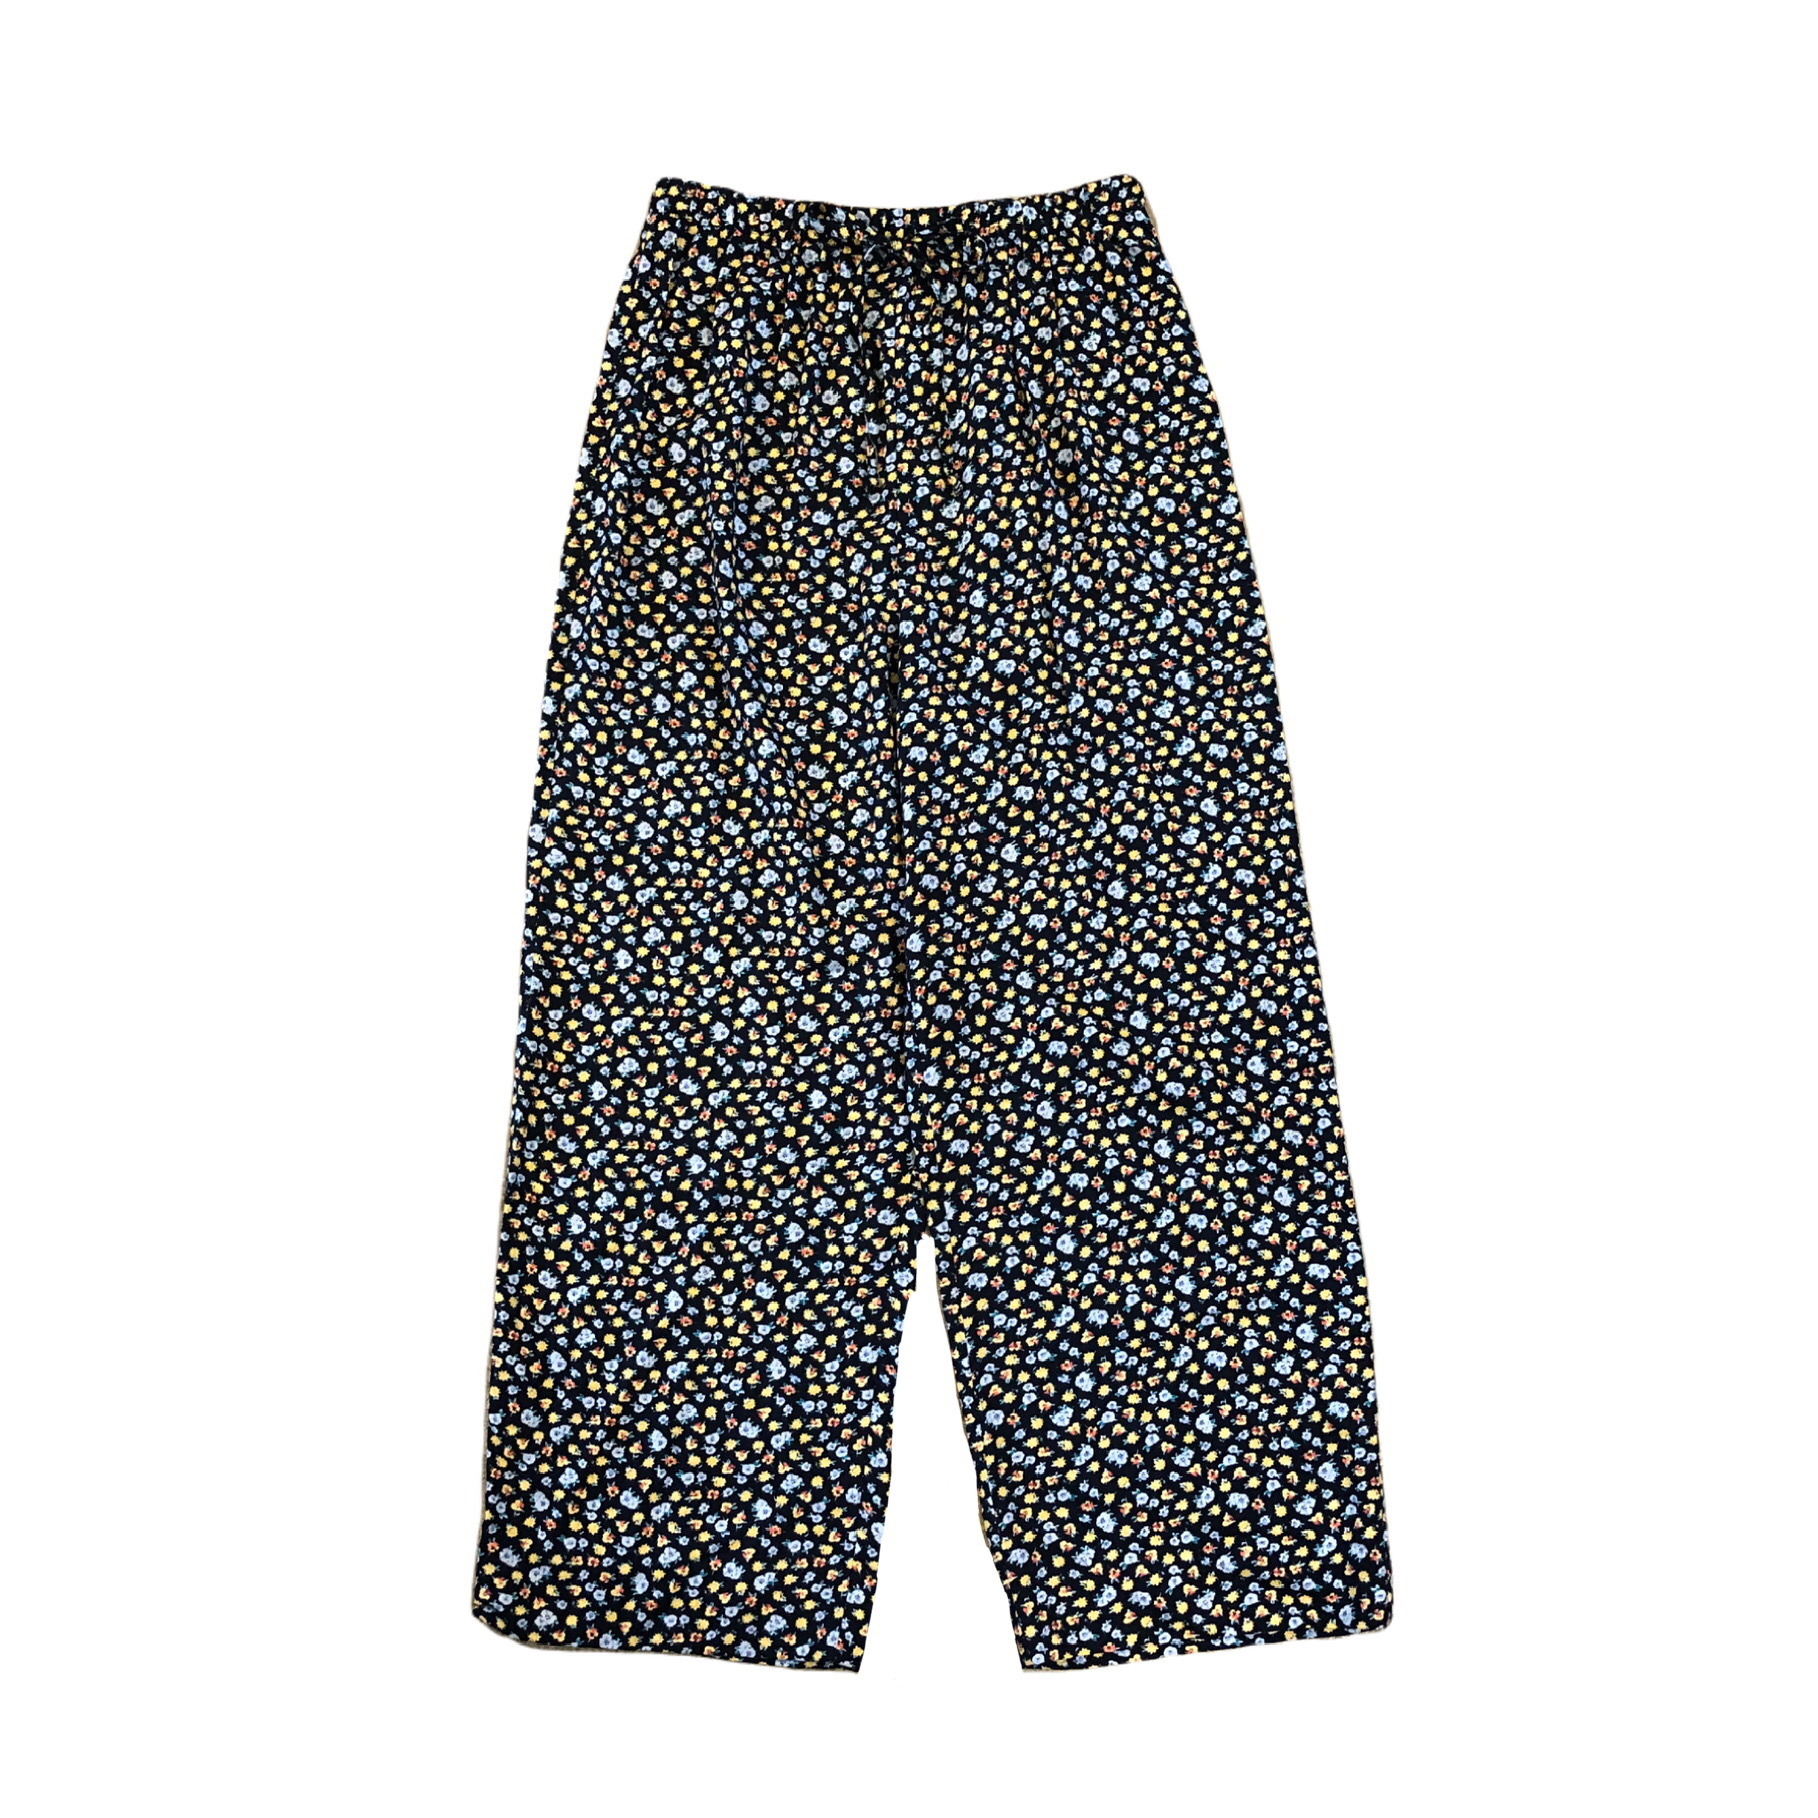 Editions Flower Easy Pants ¥5,600+tax